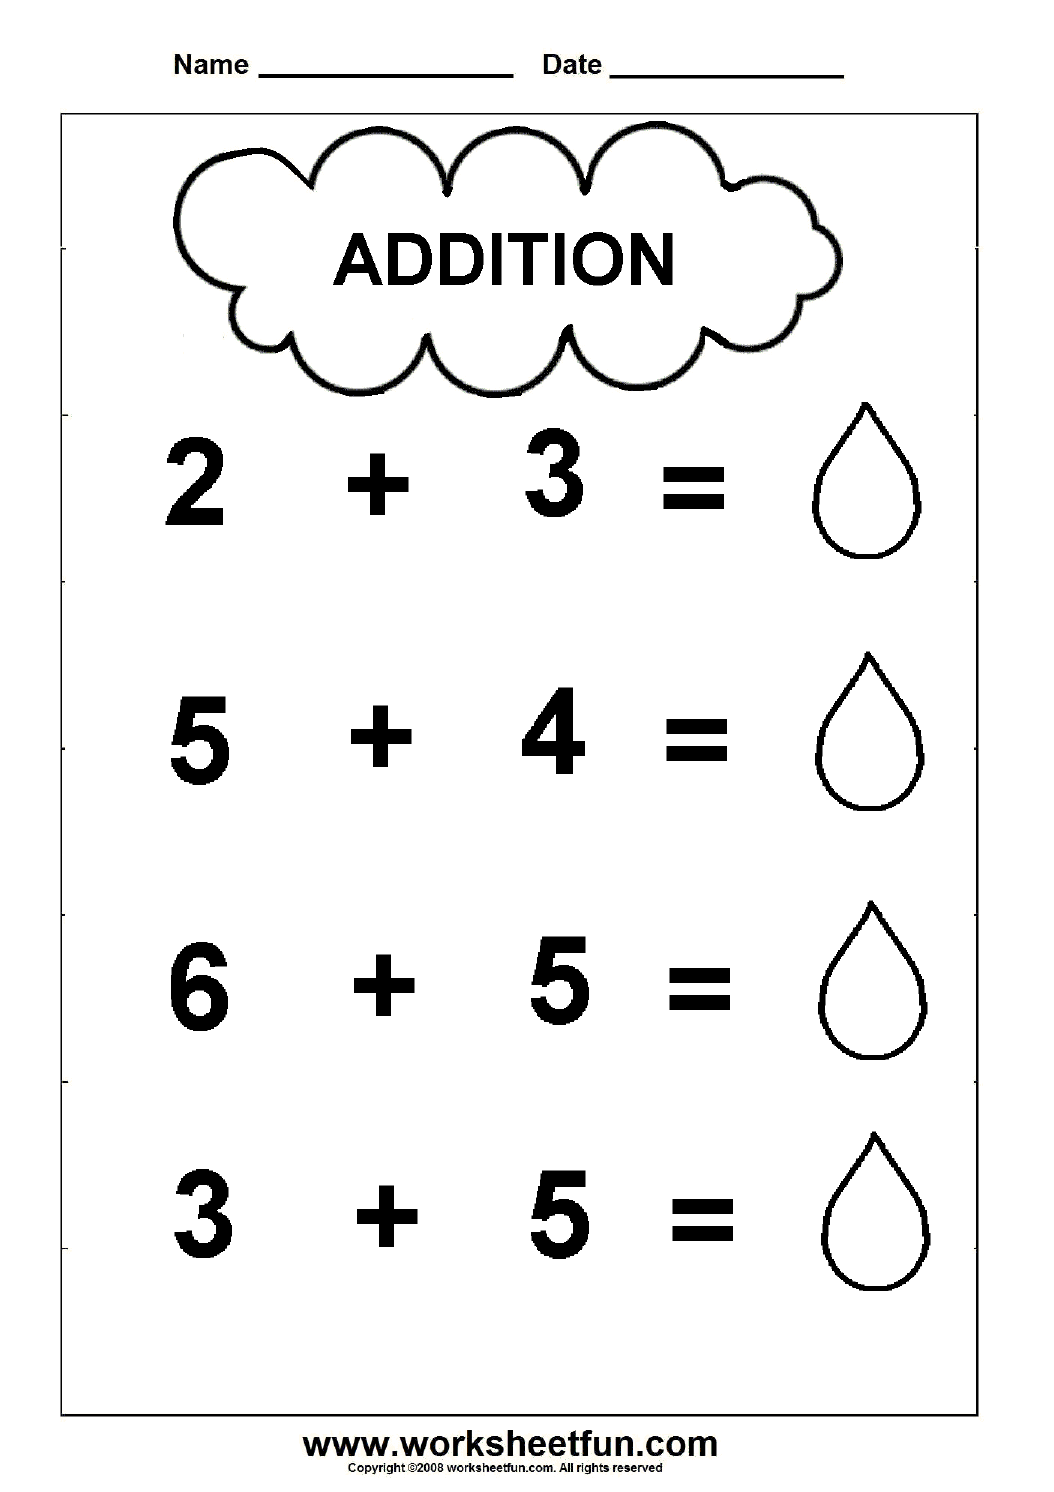 Addition 2 Worksheets Kindergarten Worksheets – Pre-kindergarten Worksheets Free Printables